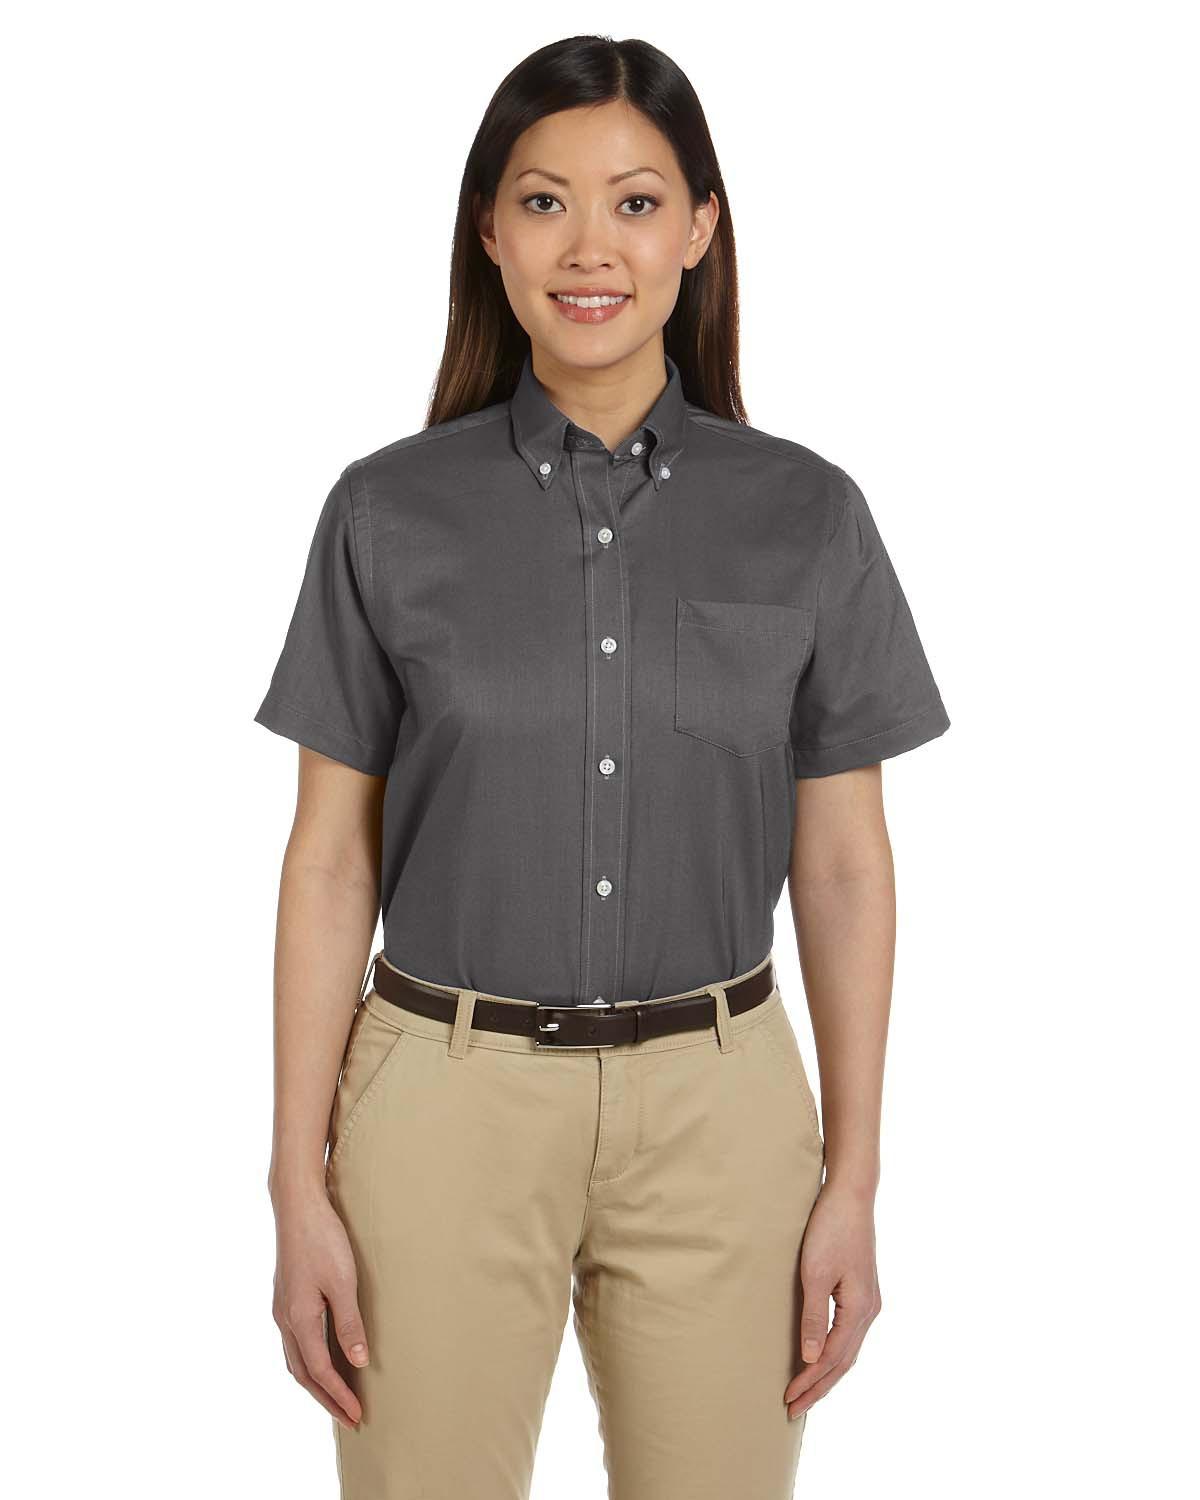 Van Heusen 59850  Women's Short-Sleeve Wrinkle-Resistant Oxford